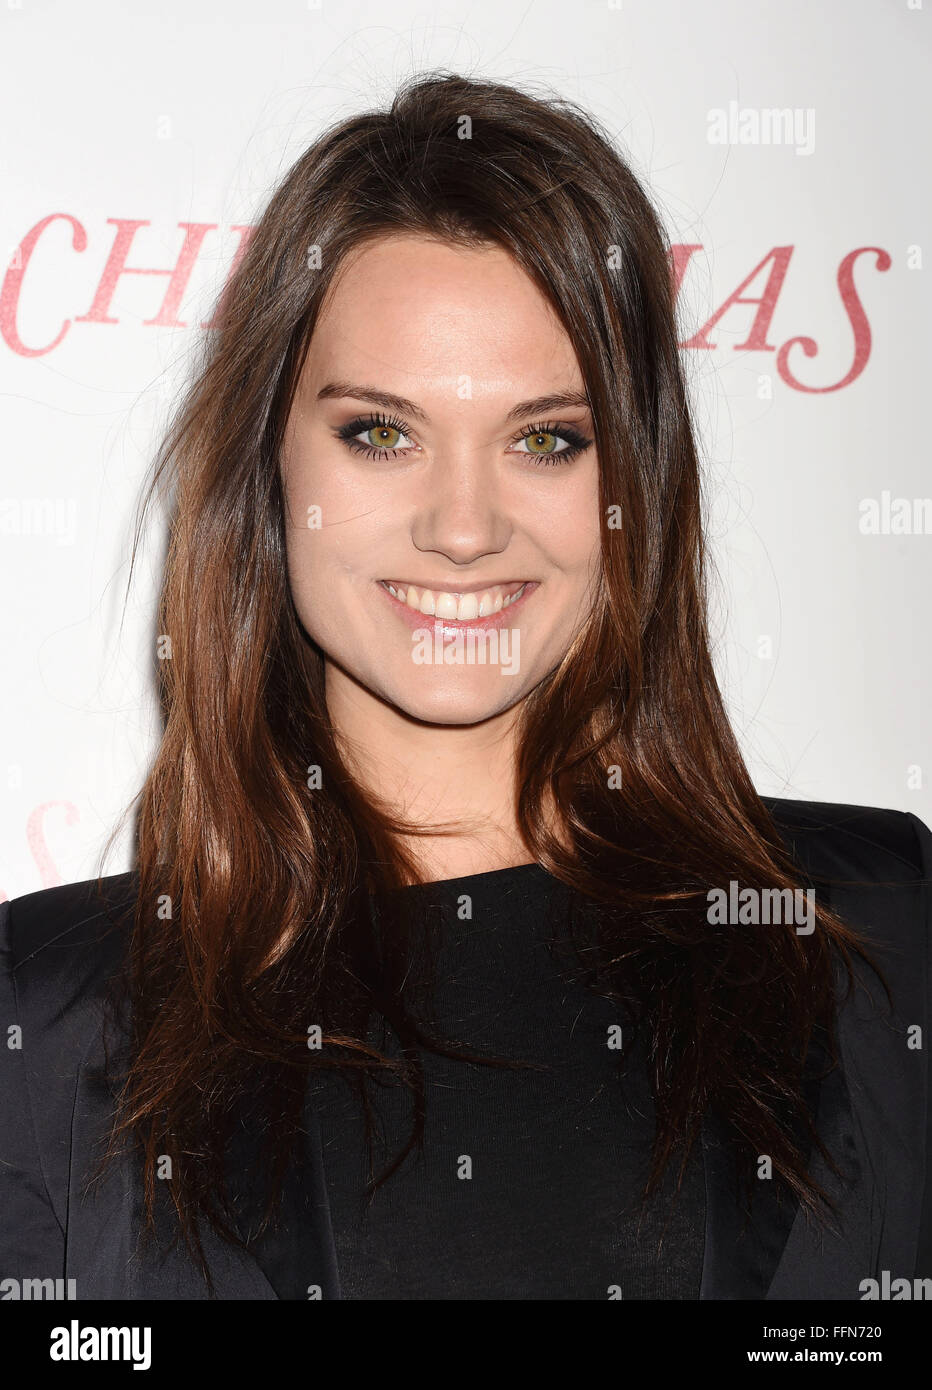 Model Laura James arrives at the premiere of Unstuck's 'Christmas Eve' at the ArcLight Hollywood on - Stock Image